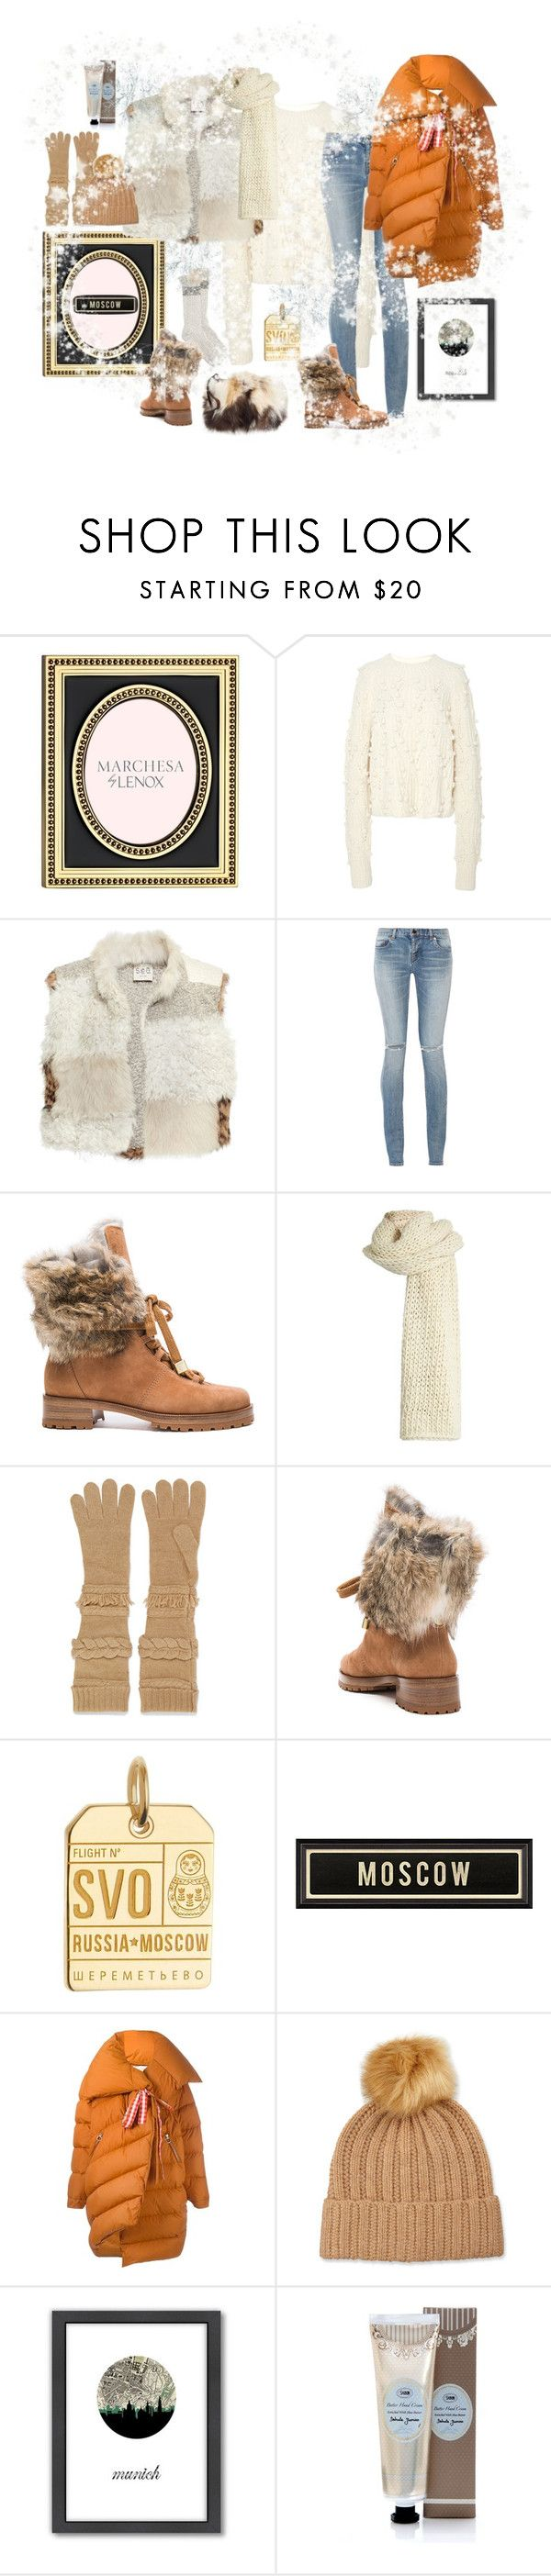 """Sooo Munich- the style of my hometown. The day we turned into Moscow☃"" by juliabachmann ❤ liked on Polyvore featuring Lenox, Ulla Johnson, Sea, New York, Yves Saint Laurent, Alexandre Birman, I Love Mr. Mittens, Agnona, Jet Set Candy, Marques'Almeida and Neiman Marcus"